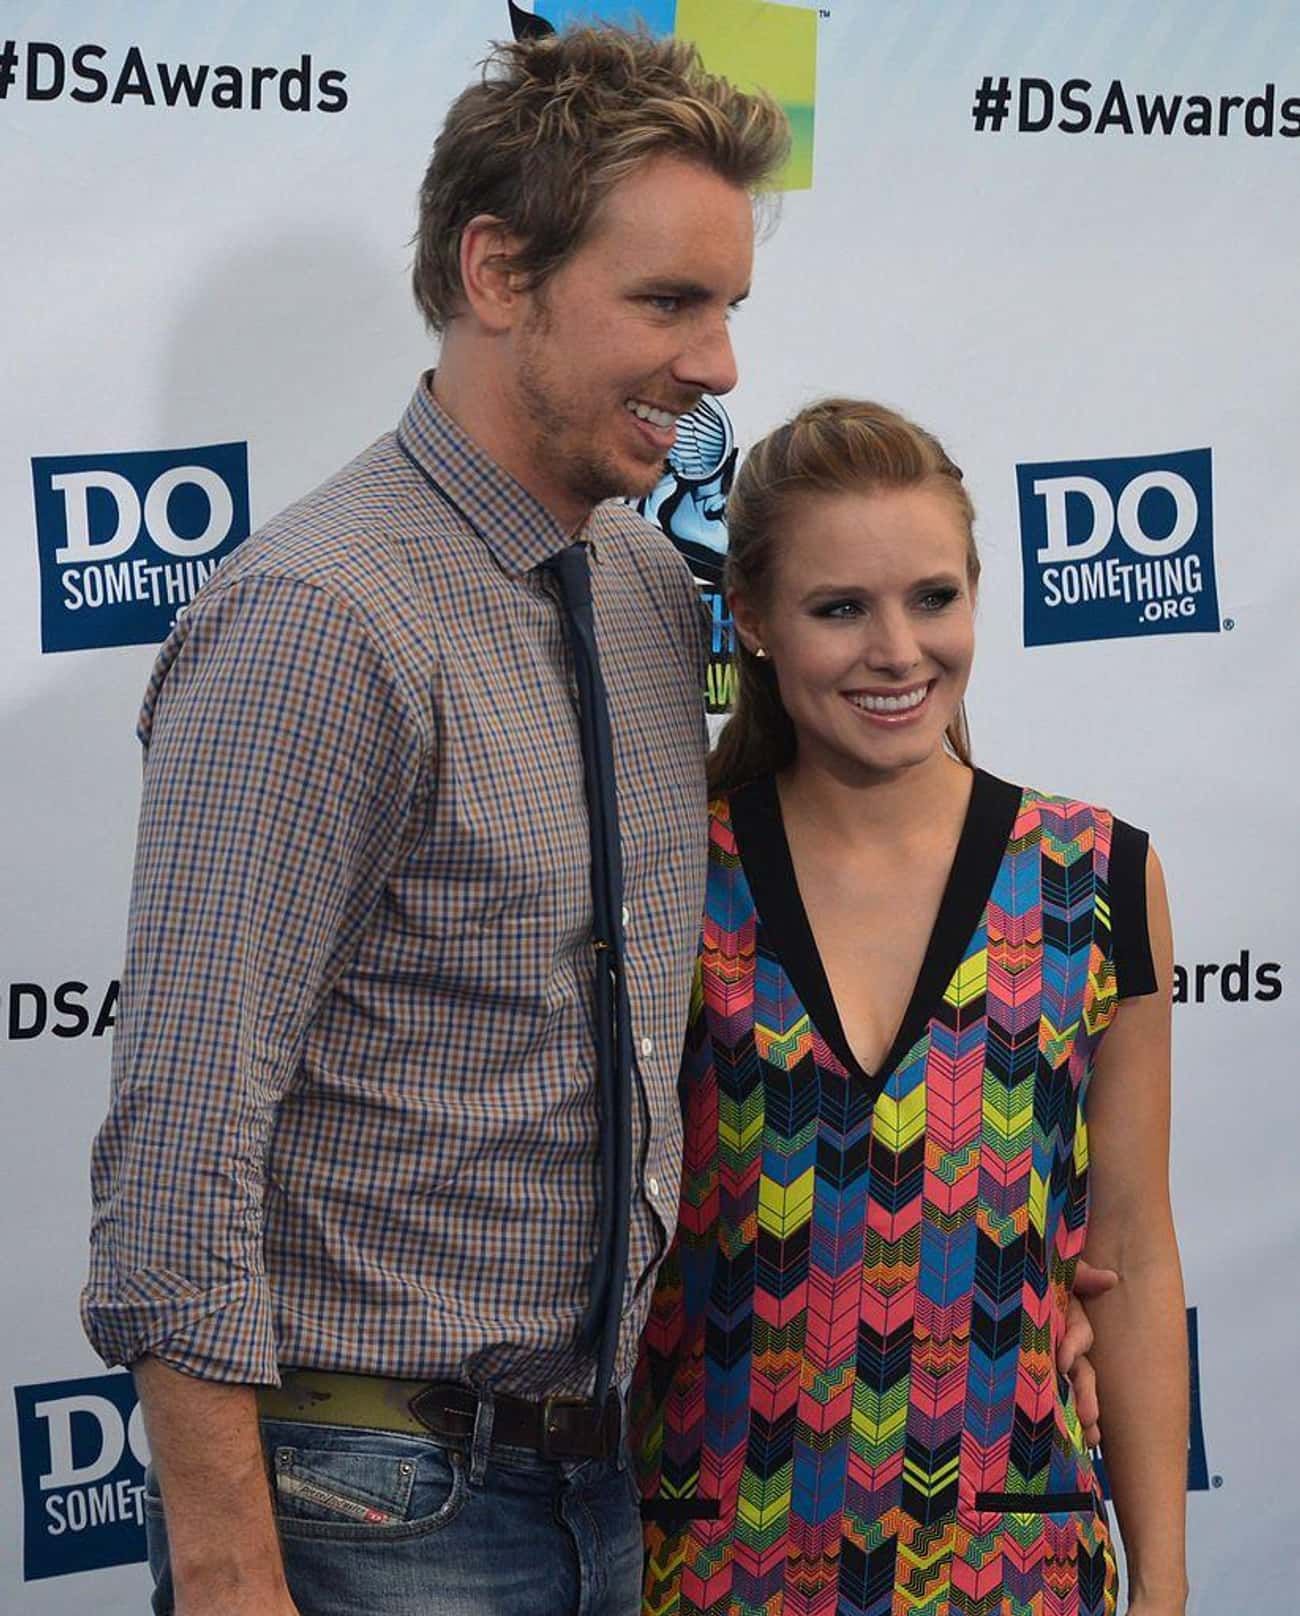 Kristen Bell and Husband Dax S is listed (or ranked) 2 on the list 24 Celebs Who Love 'Game of Thrones' As Much As You Do